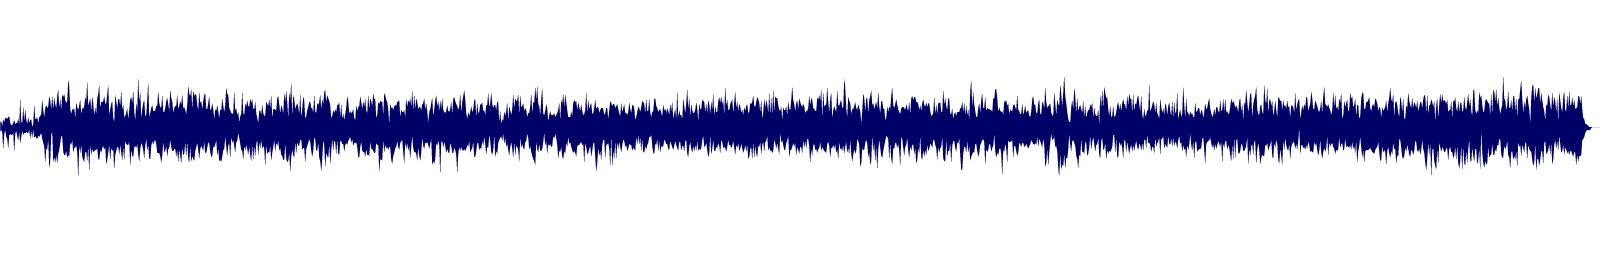 waveform of track #105605